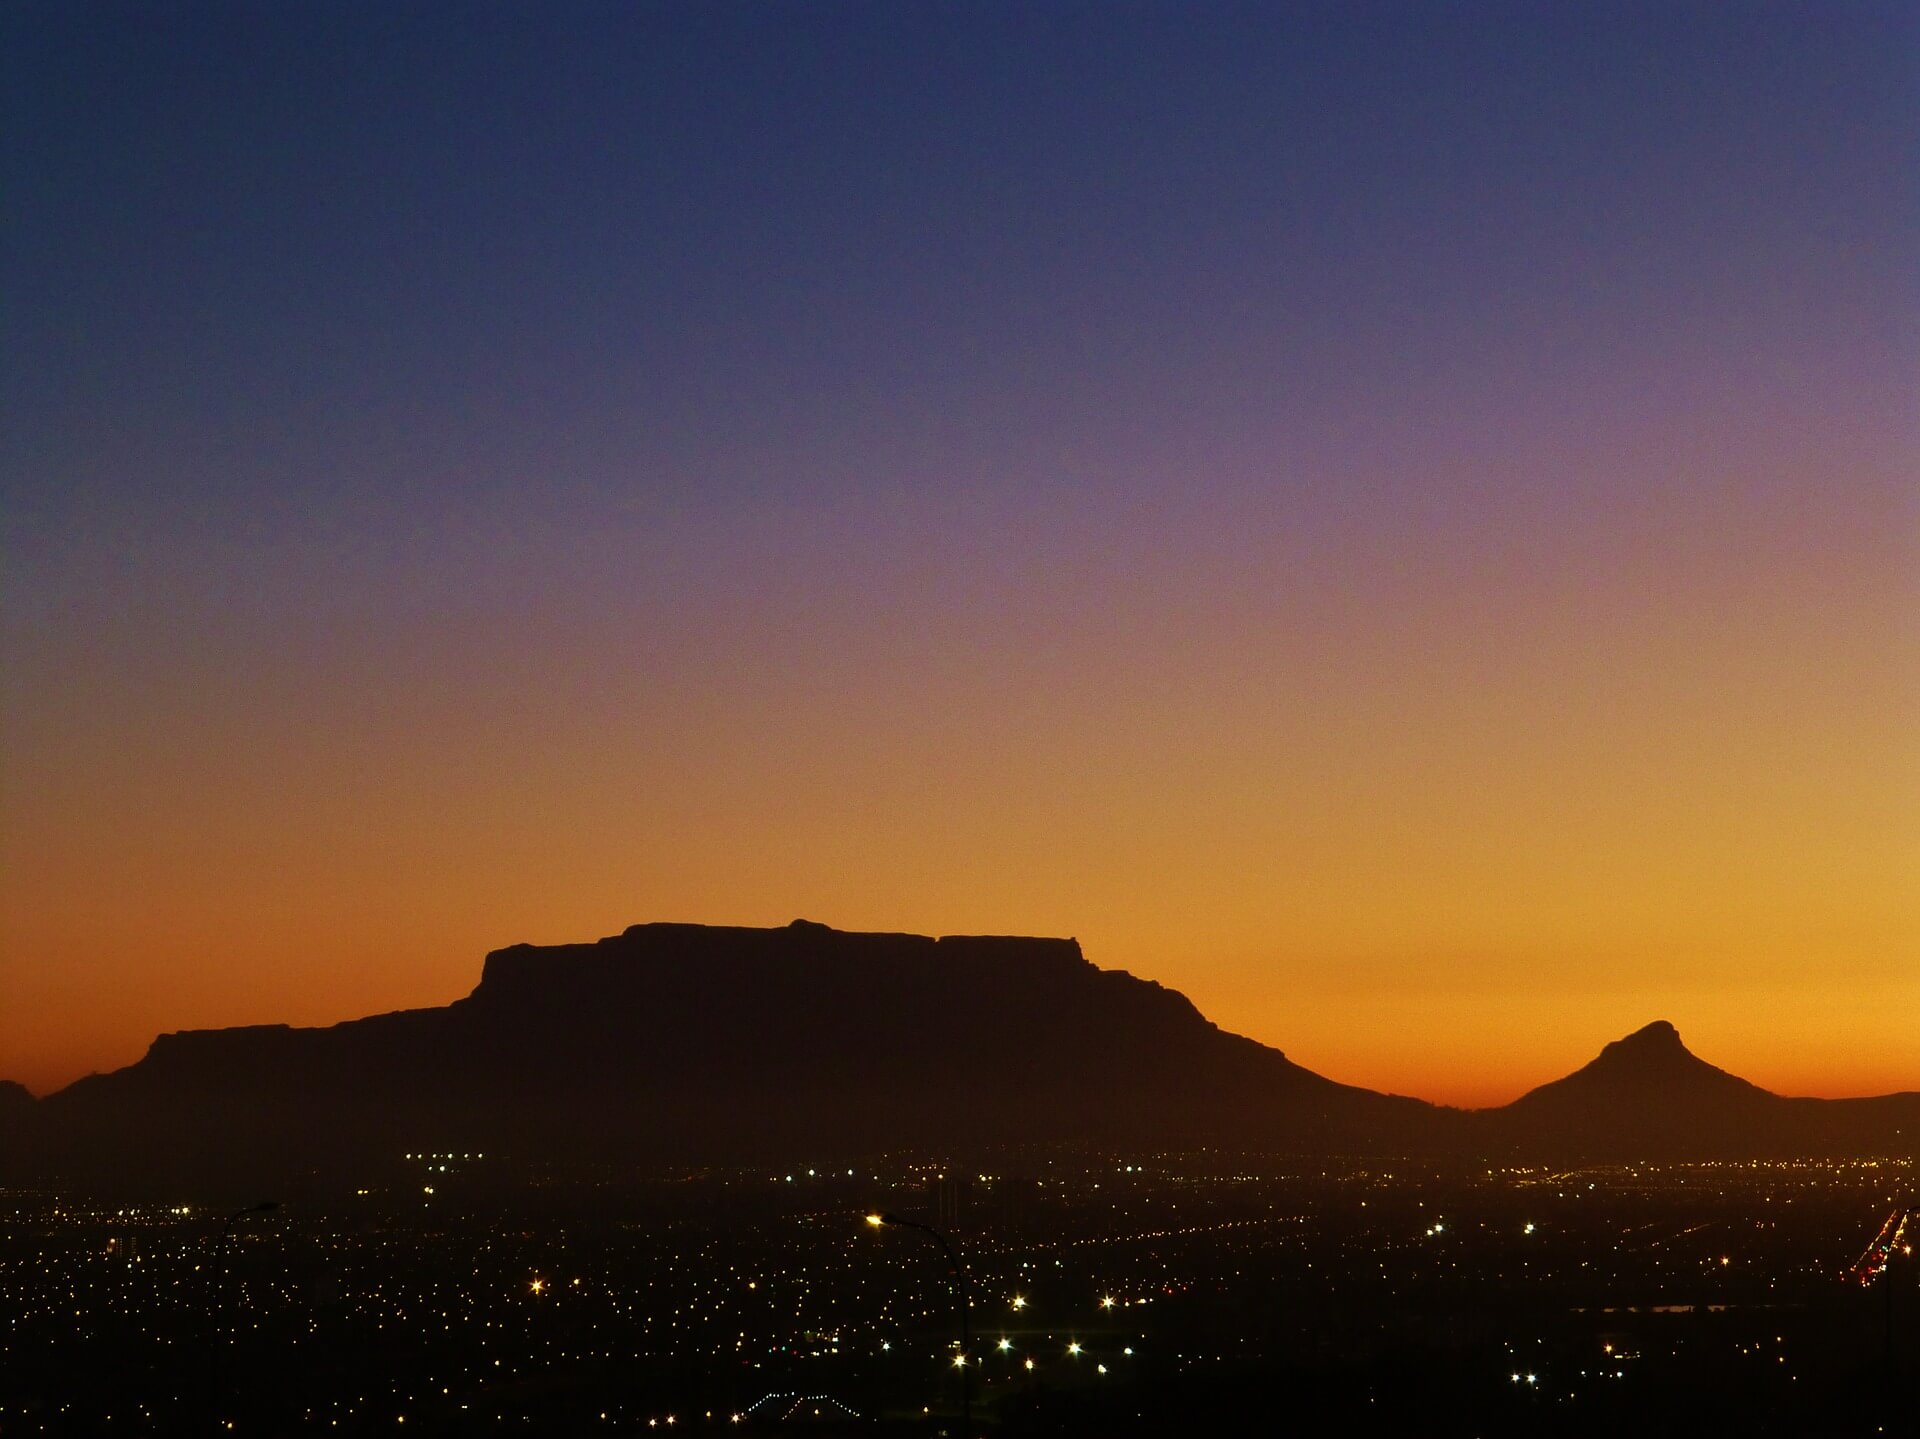 Our Beloved Mountain against the Sunset!